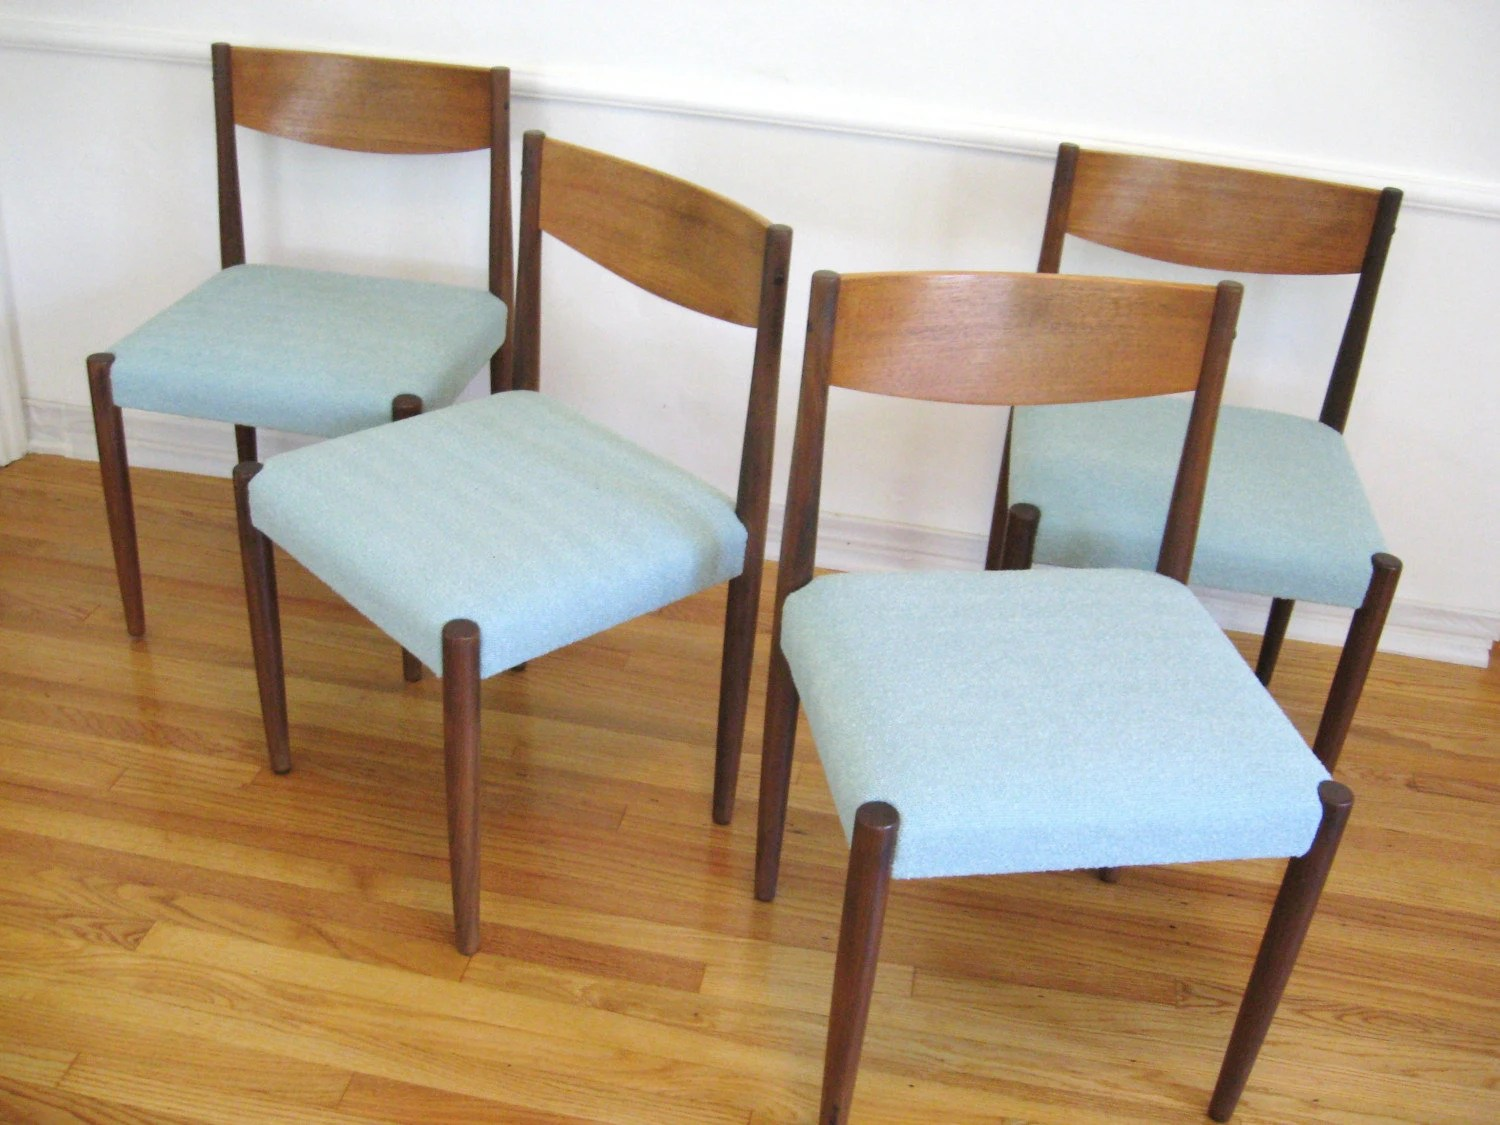 Retro Dining Chair 60s Danish Modern Teak Wood Vintage Dining Chairs By